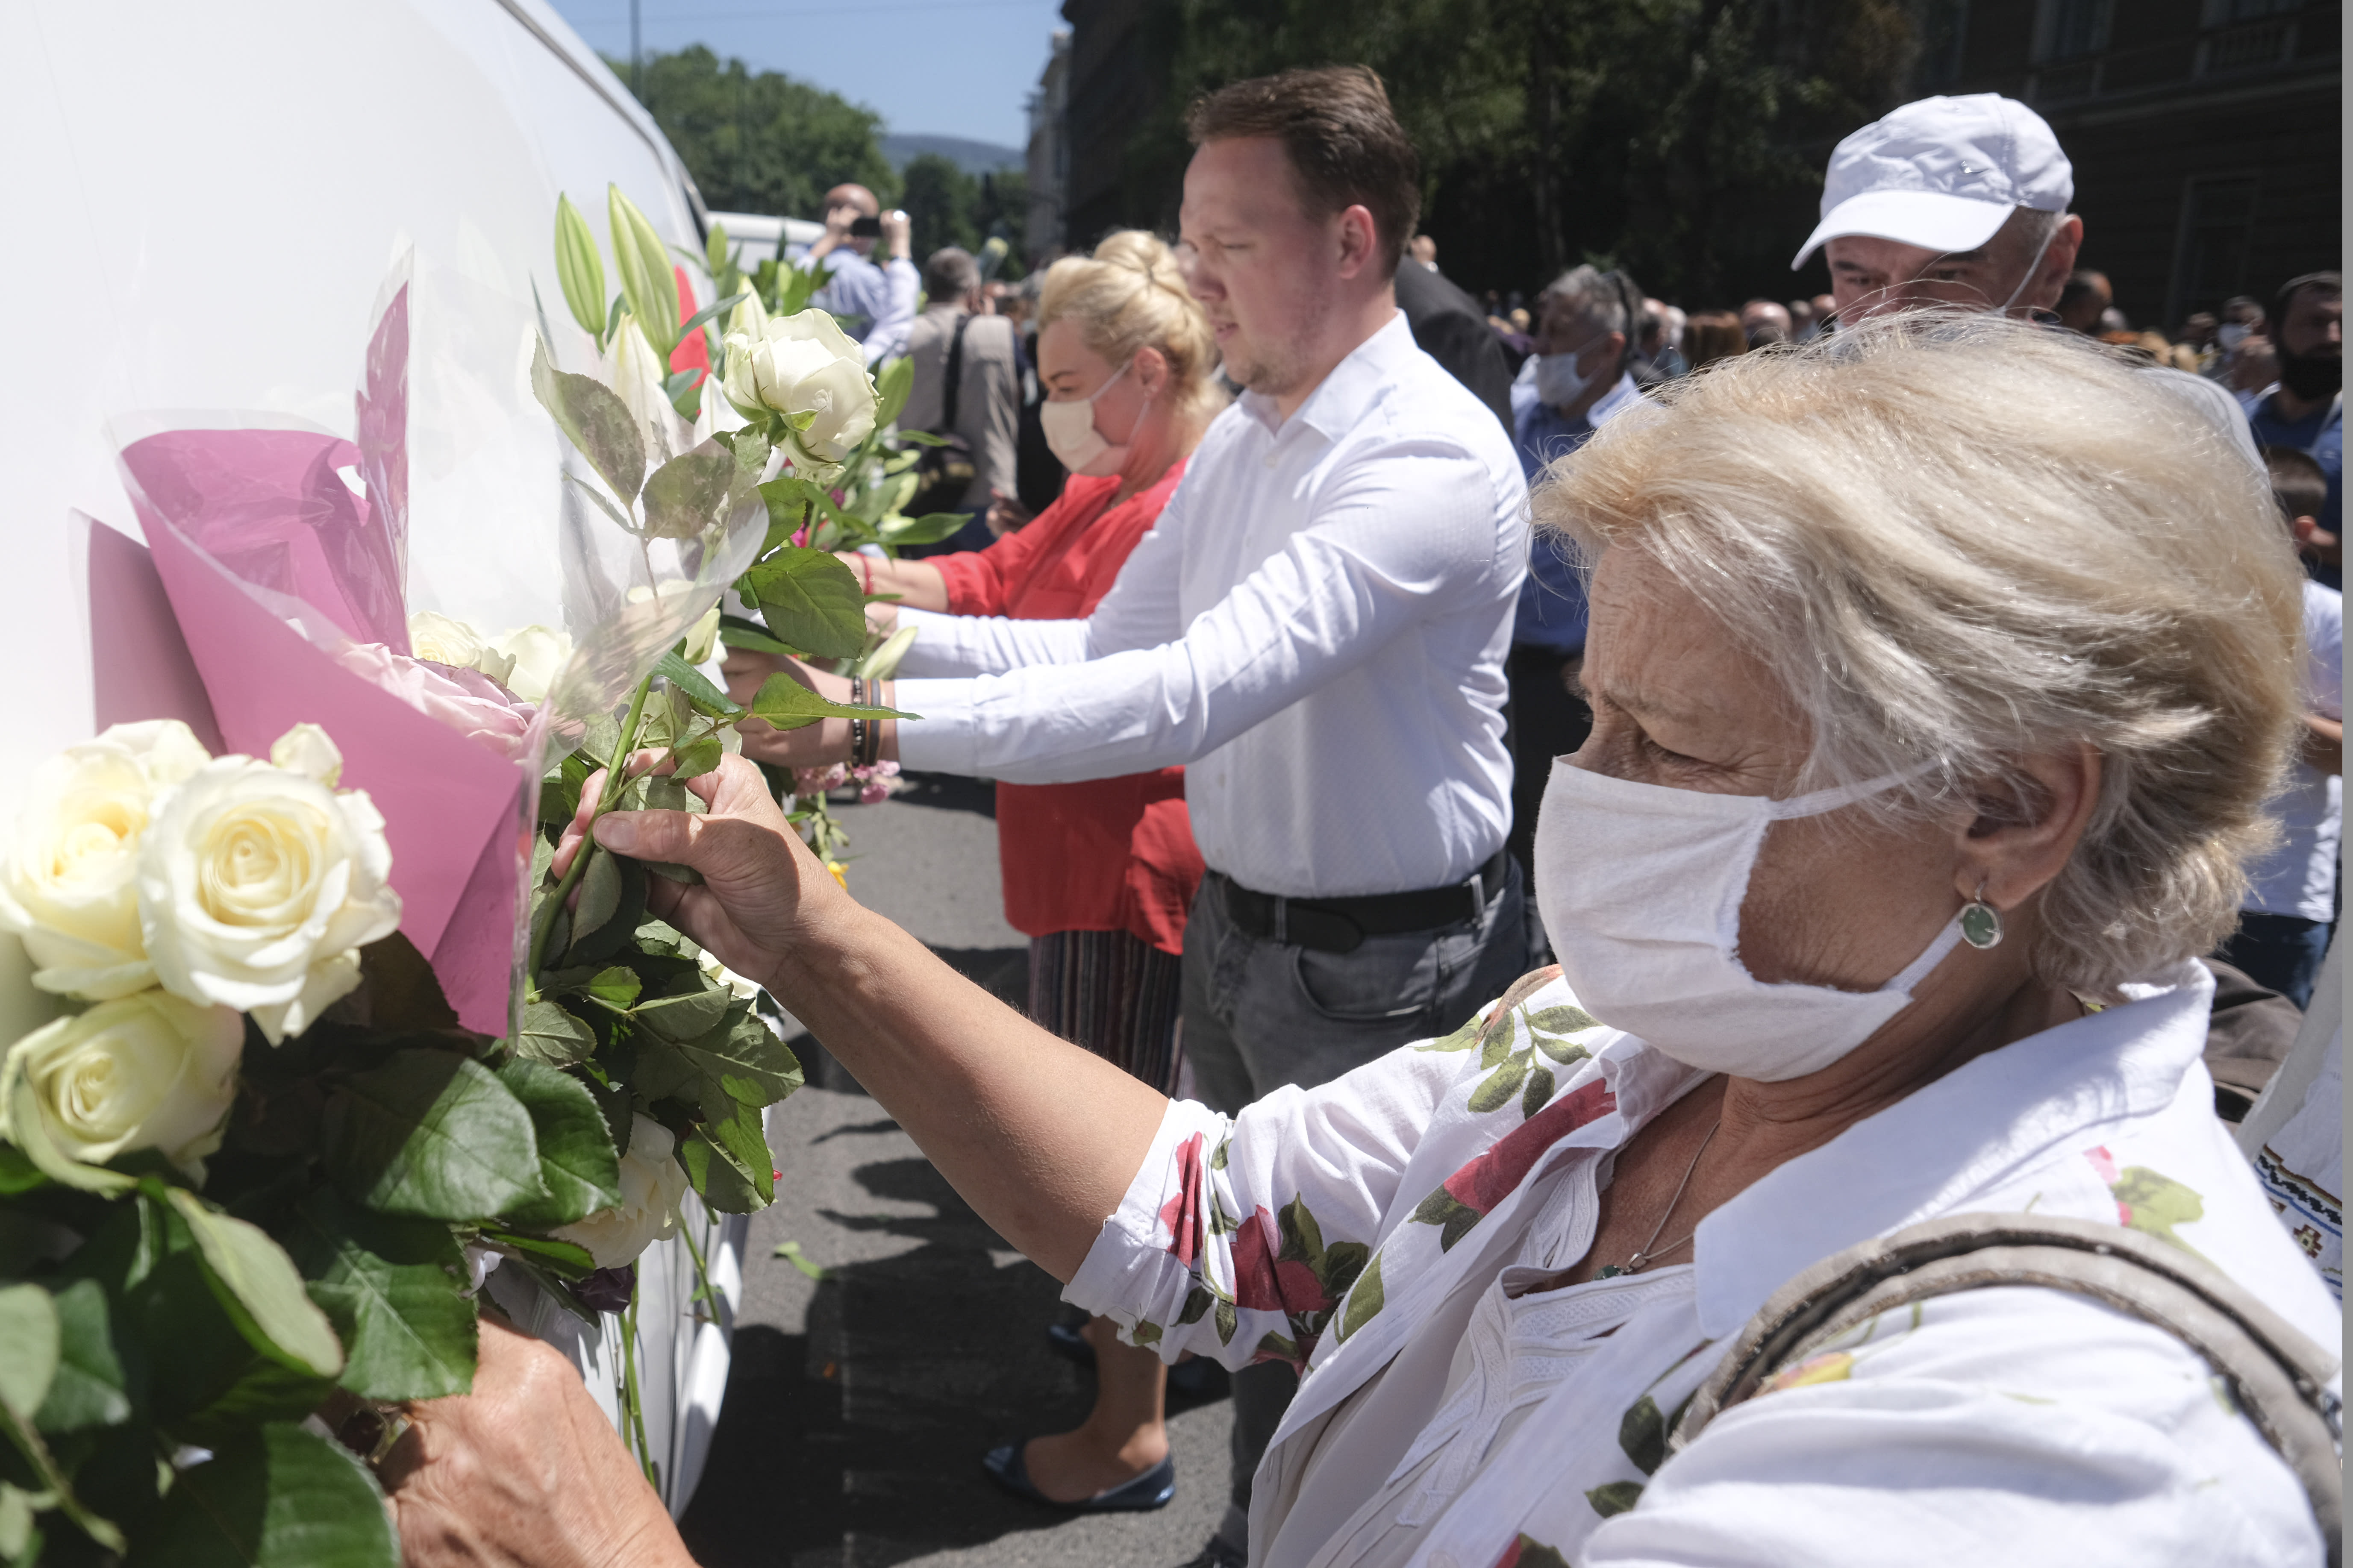 People place flowers on vans as hundreds of people turned out in Sarajevo's main street Thursday, July 9, 2020, to pay respects to eight victims of the Srebrenica massacre as three white vans carried their coffins to a final resting place. The remains of the men and boys, found in mass graves and identified through DNA analysis, will be buried in Srebrenica on Saturday, the 25th anniversary of the massacre, next to 6,610 previously found victims. (AP Photo/Kemal Softic)